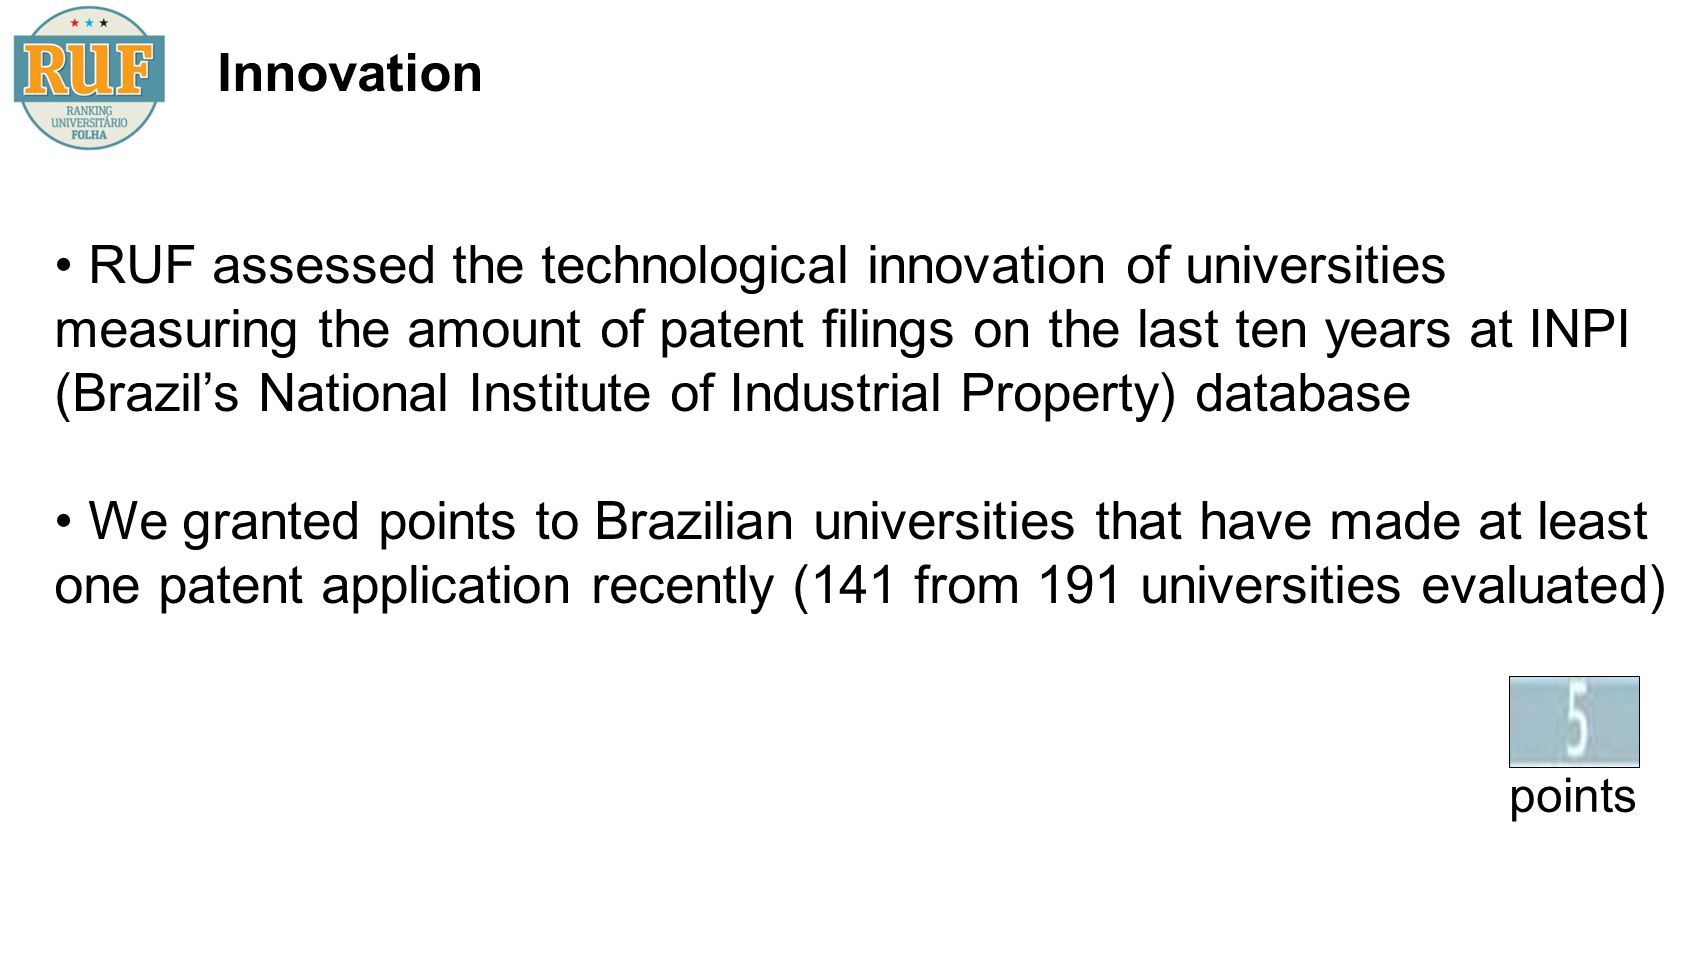 Innovation RUF assessed the technological innovation of universities measuring the amount of patent filings on the last ten years at INPI (Brazils National Institute of Industrial Property) database We granted points to Brazilian universities that have made at least one patent application recently (141 from 191 universities evaluated) = points